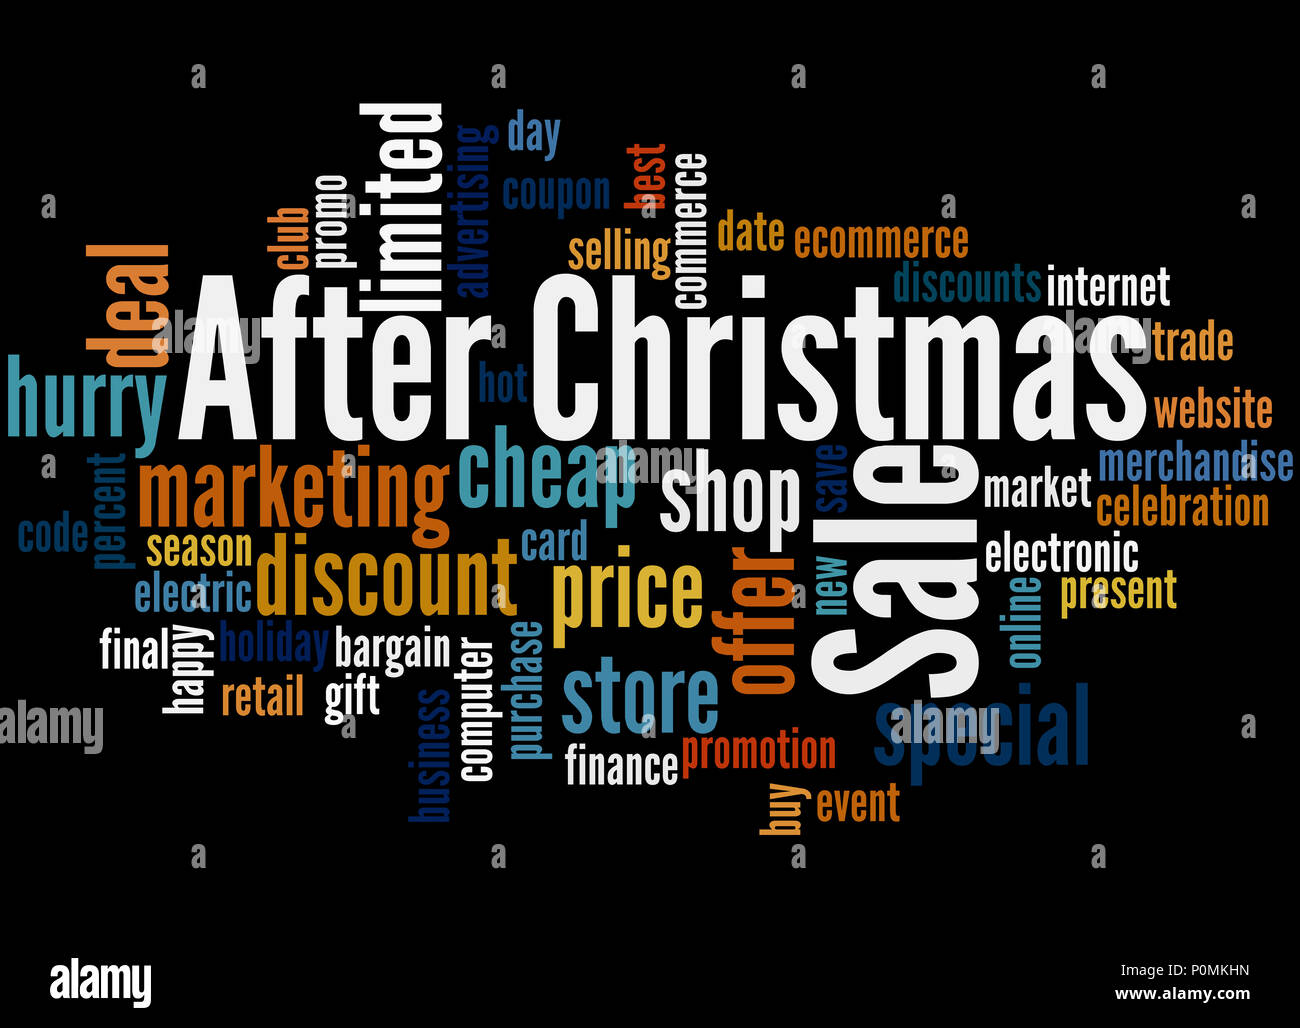 after christmas sale word cloud concept on black background - Best After Christmas Sale